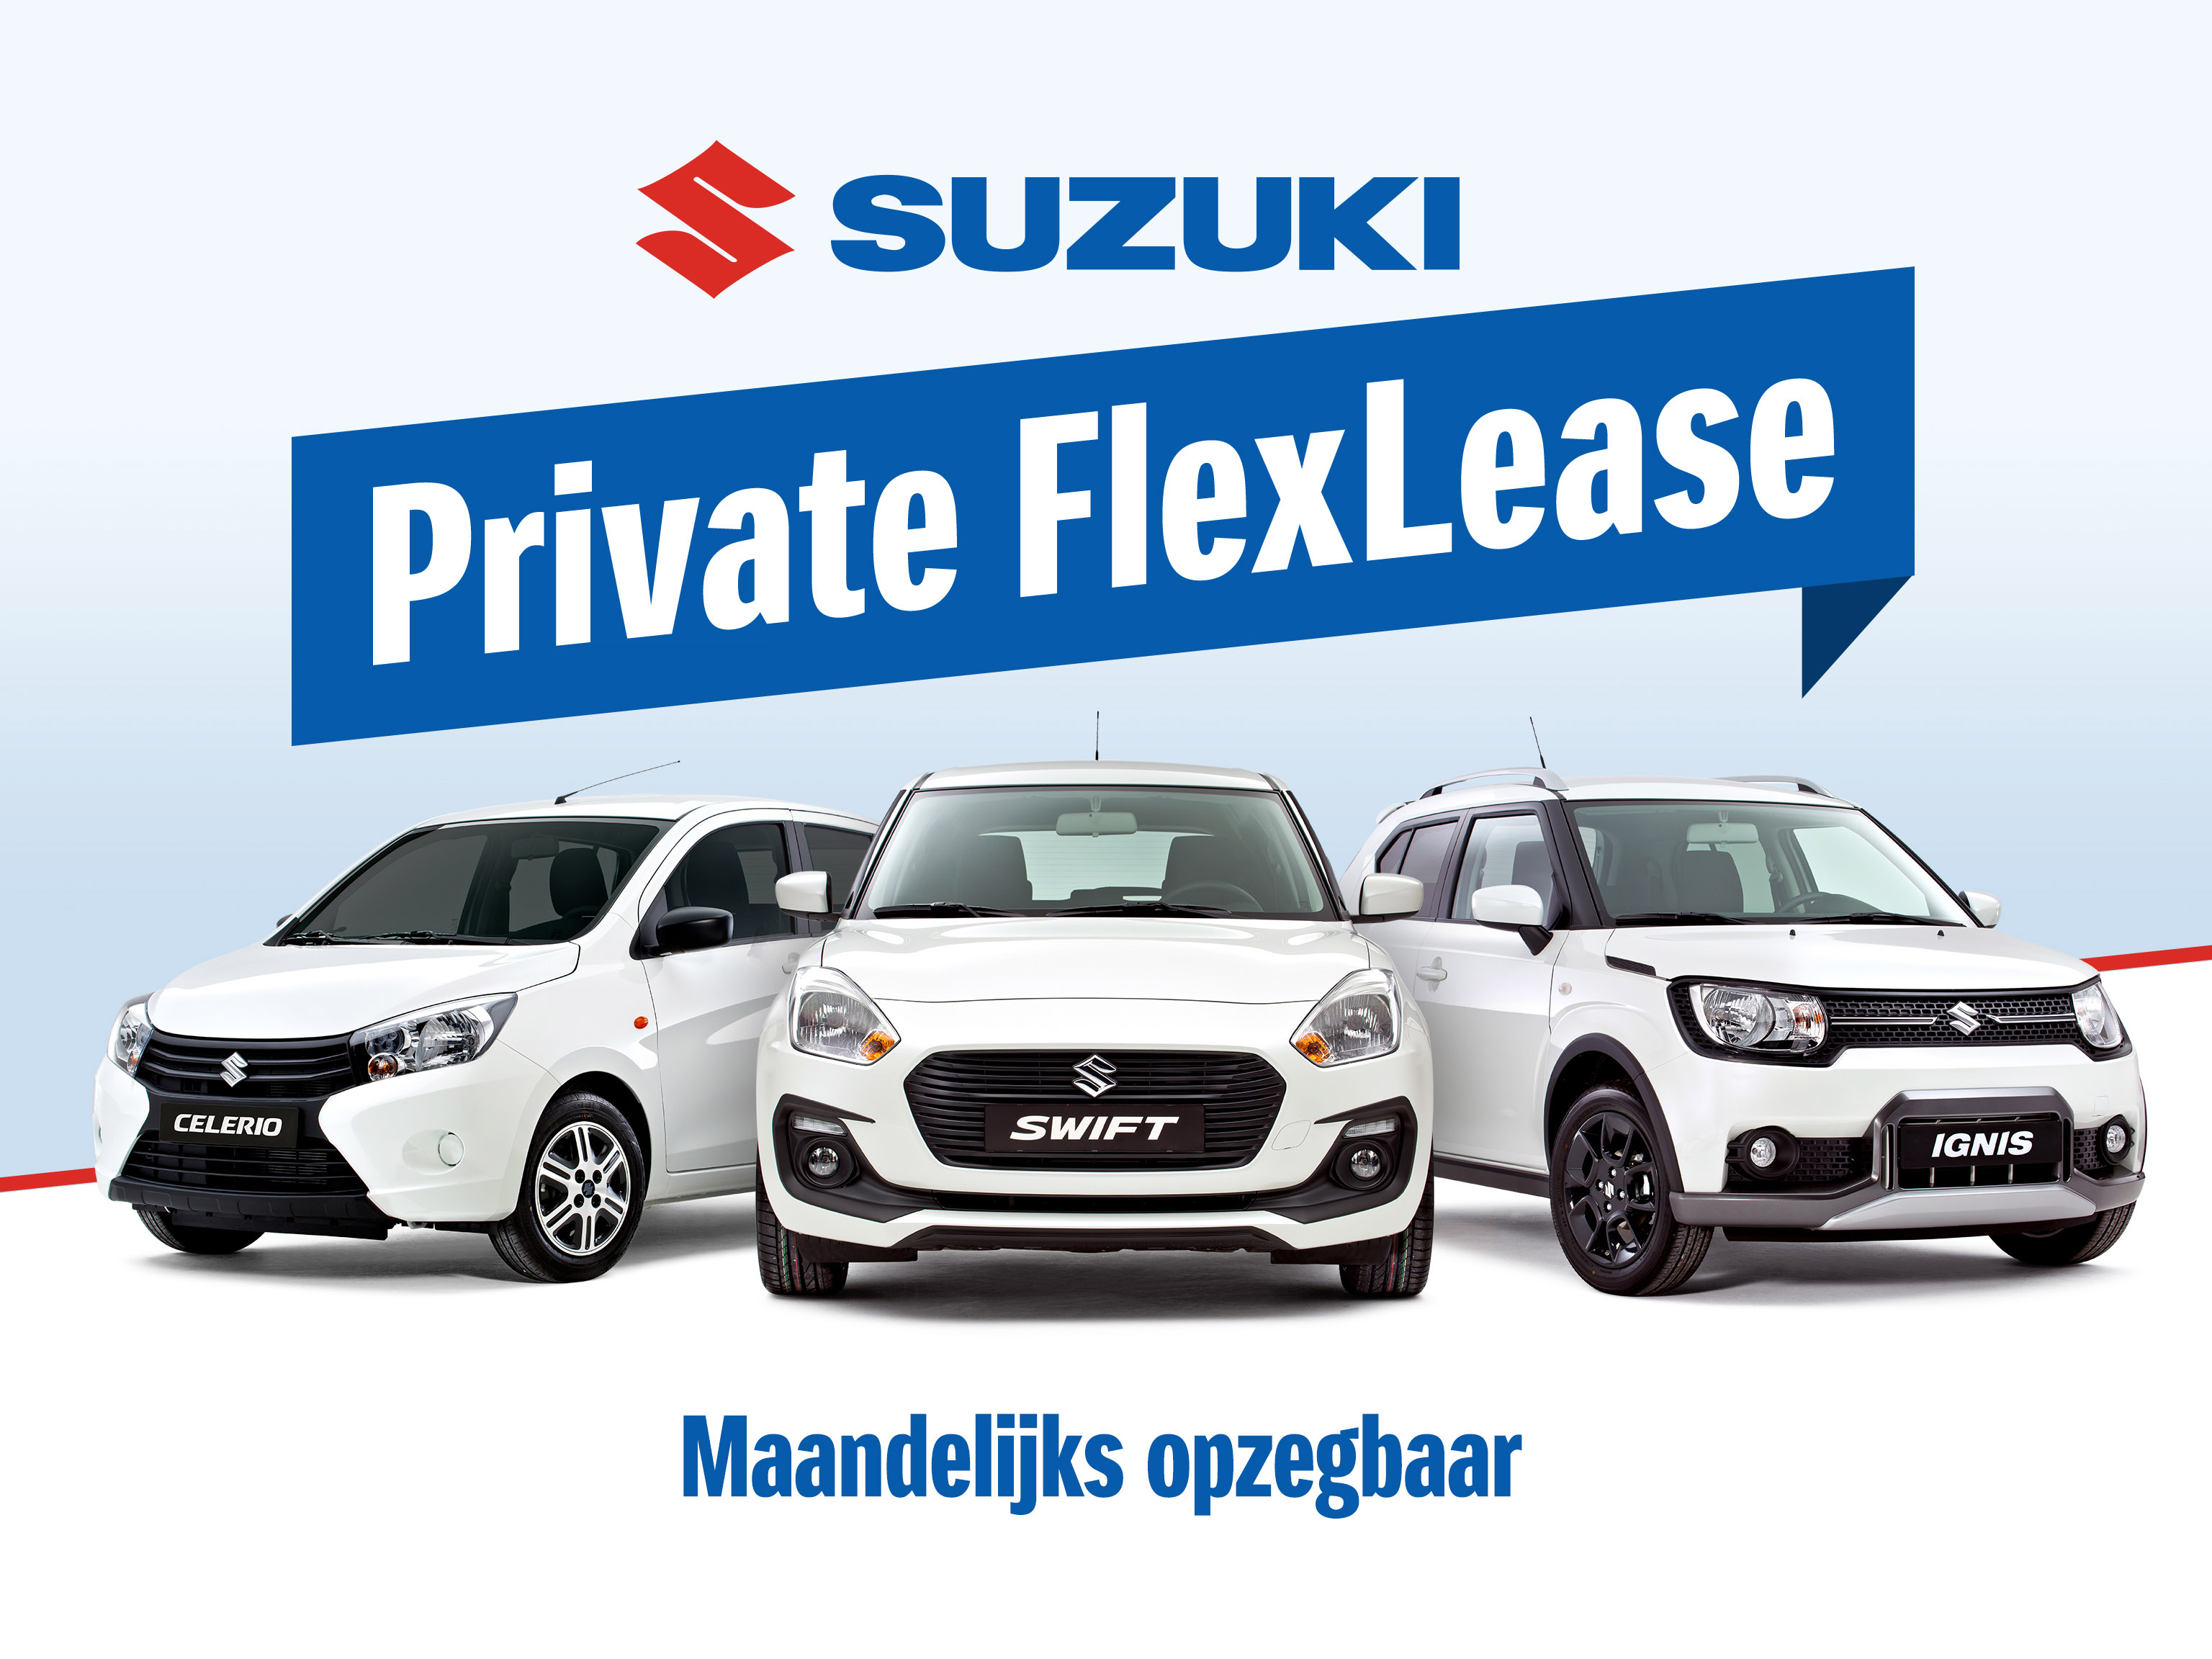 Suzuki_private_flex_lease